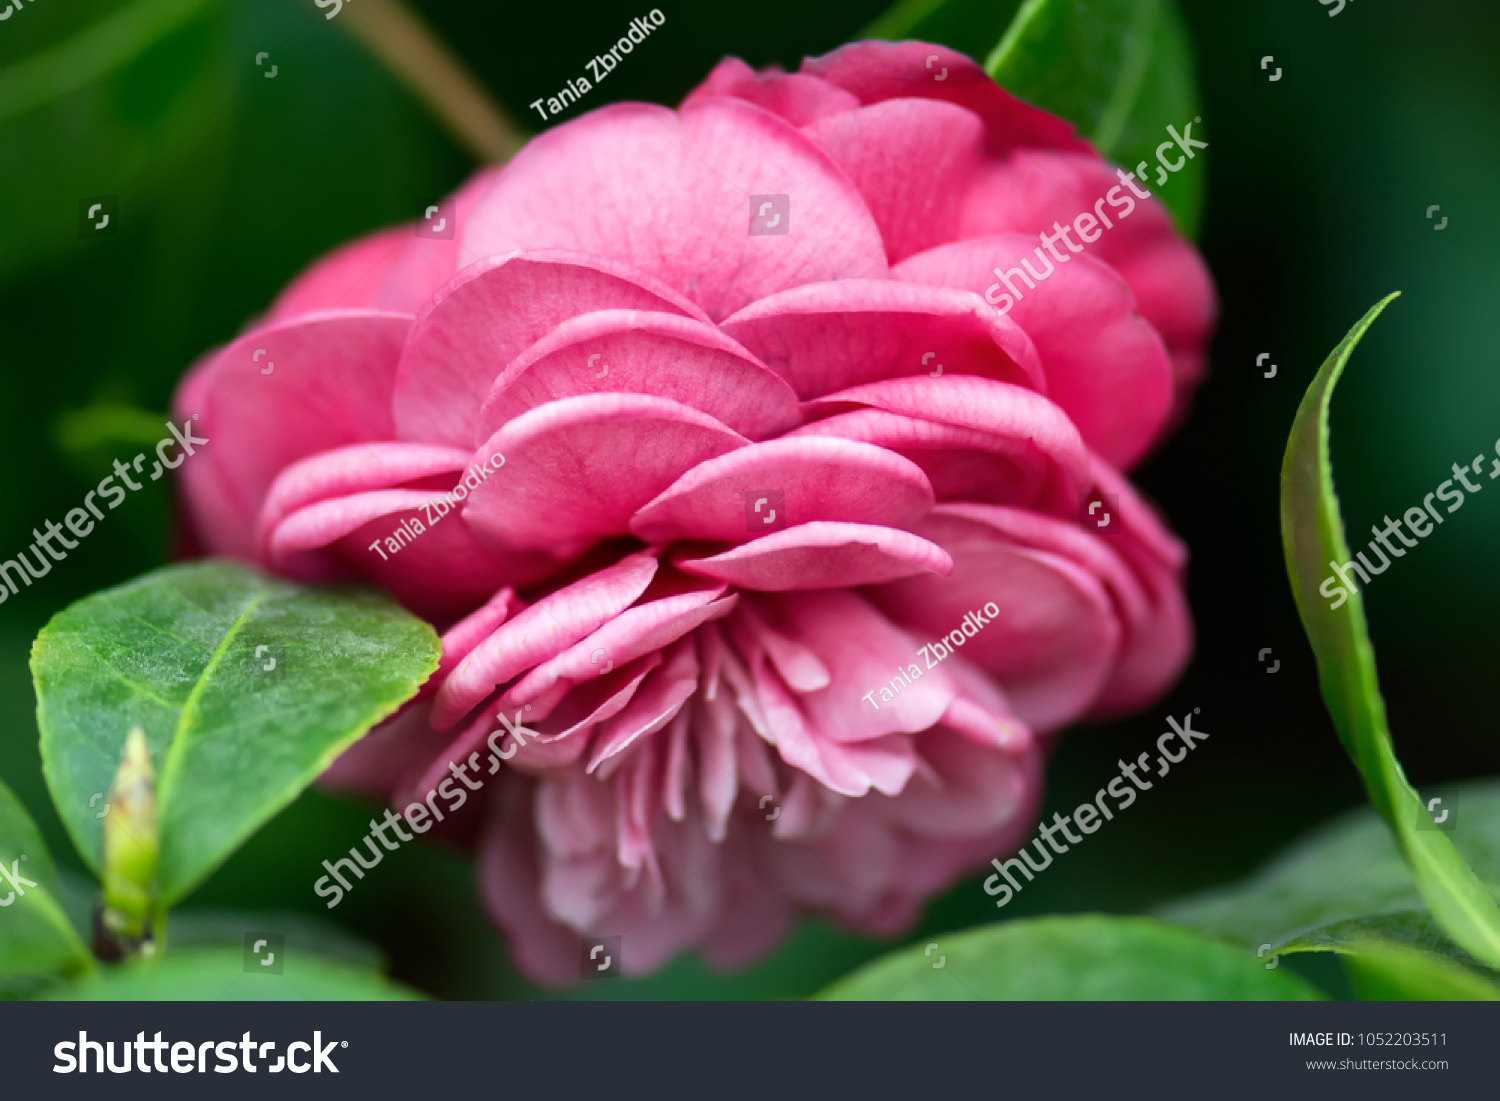 Blossom Pink Camellia Camellia Japonica Flower Stock Photo Edit Now